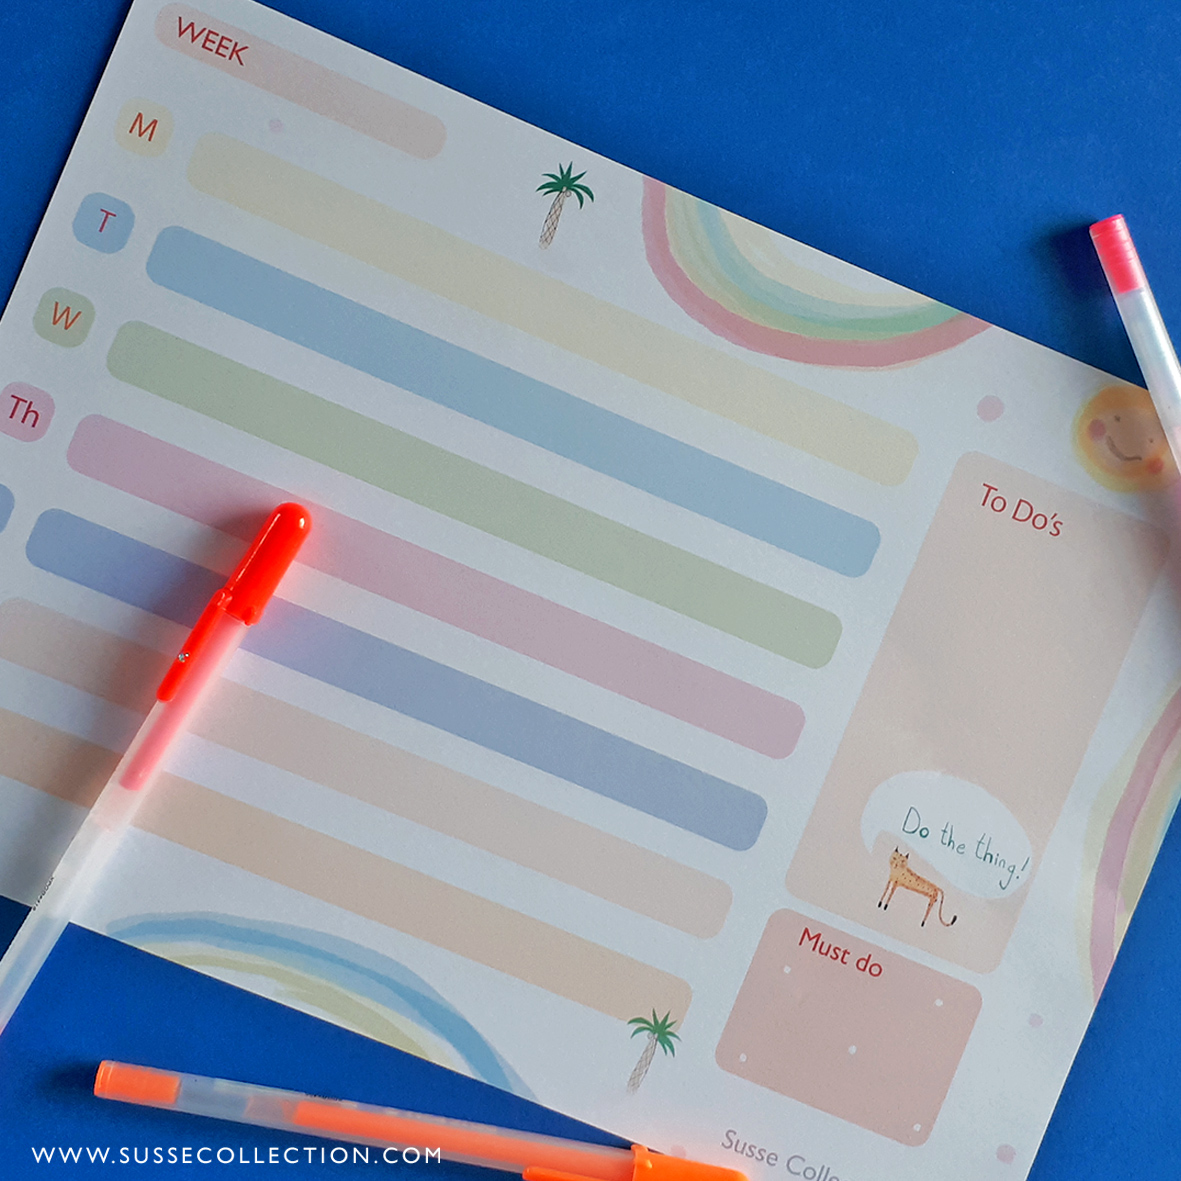 Susse Collection_Free weekly planner.jpg